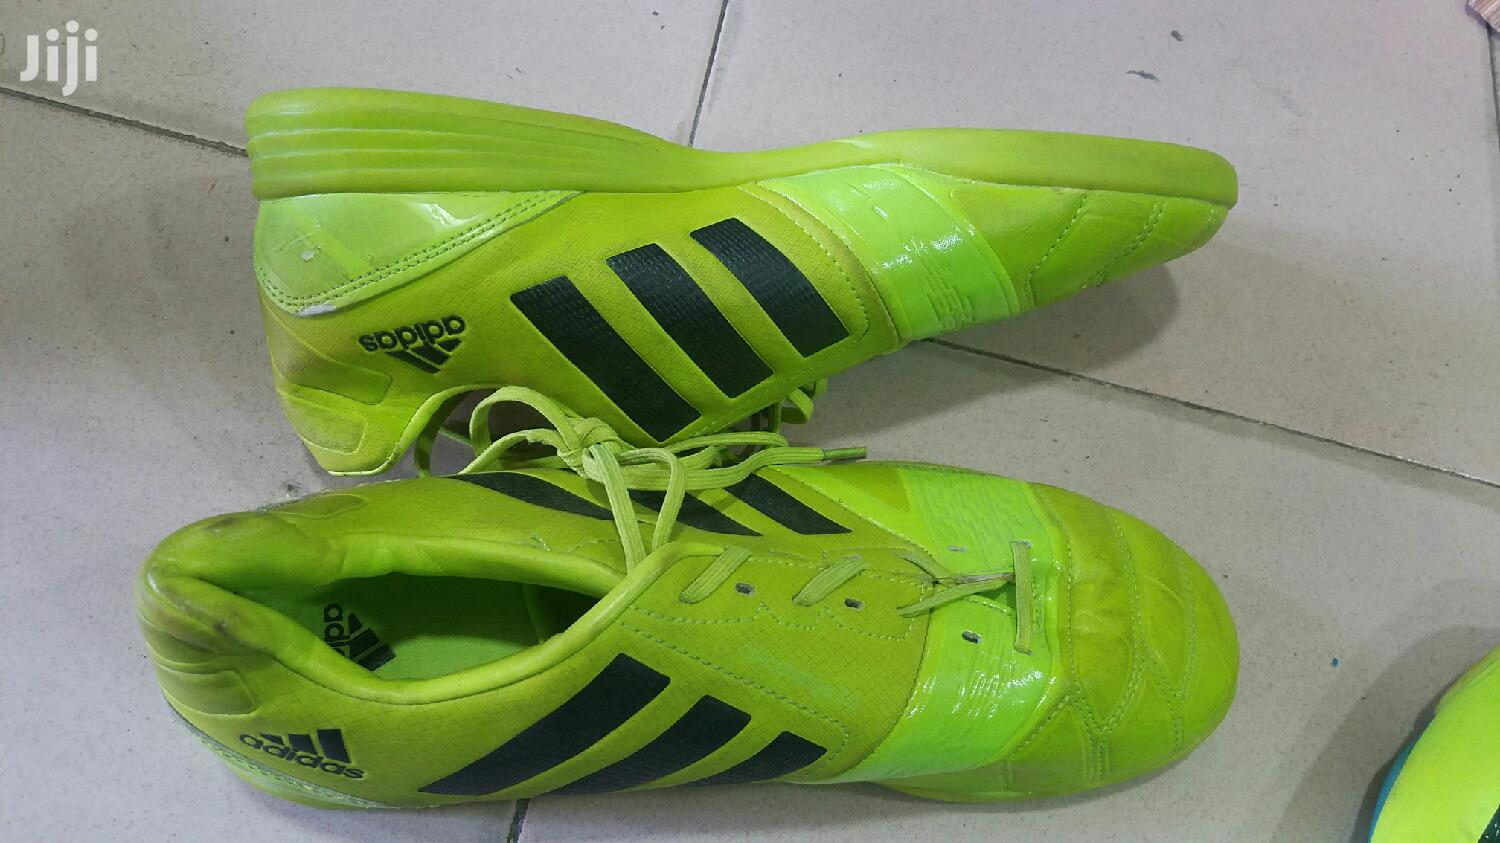 Adidas Size 41 Canvas Training Boot | Shoes for sale in Ikeja, Lagos State, Nigeria